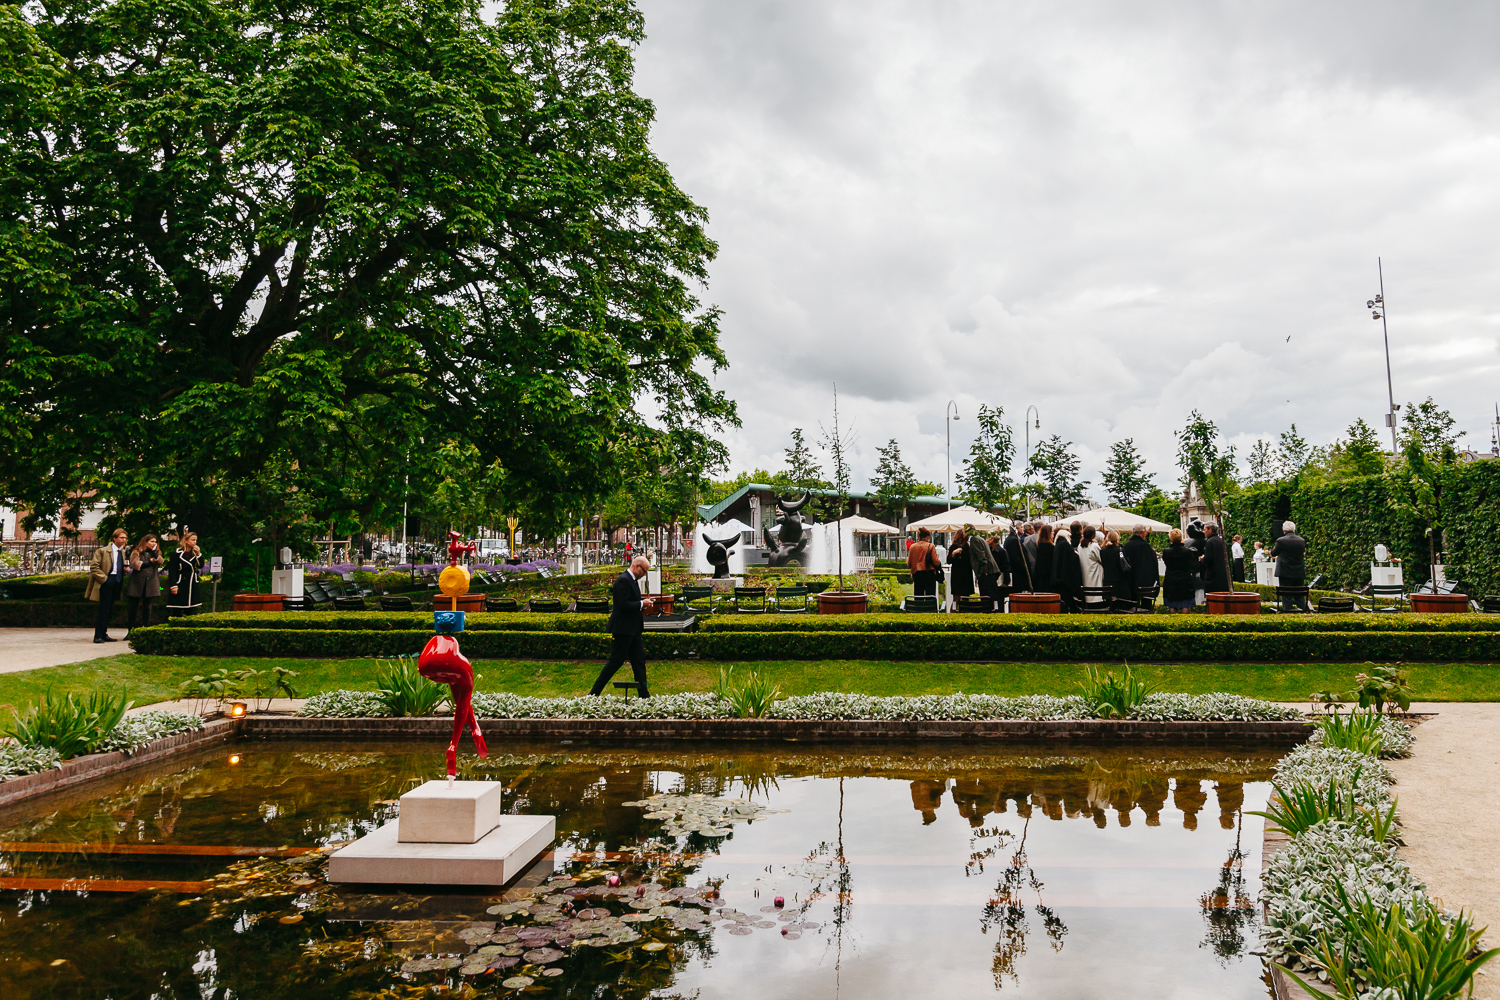 Rijks Museum's annual Garden Party